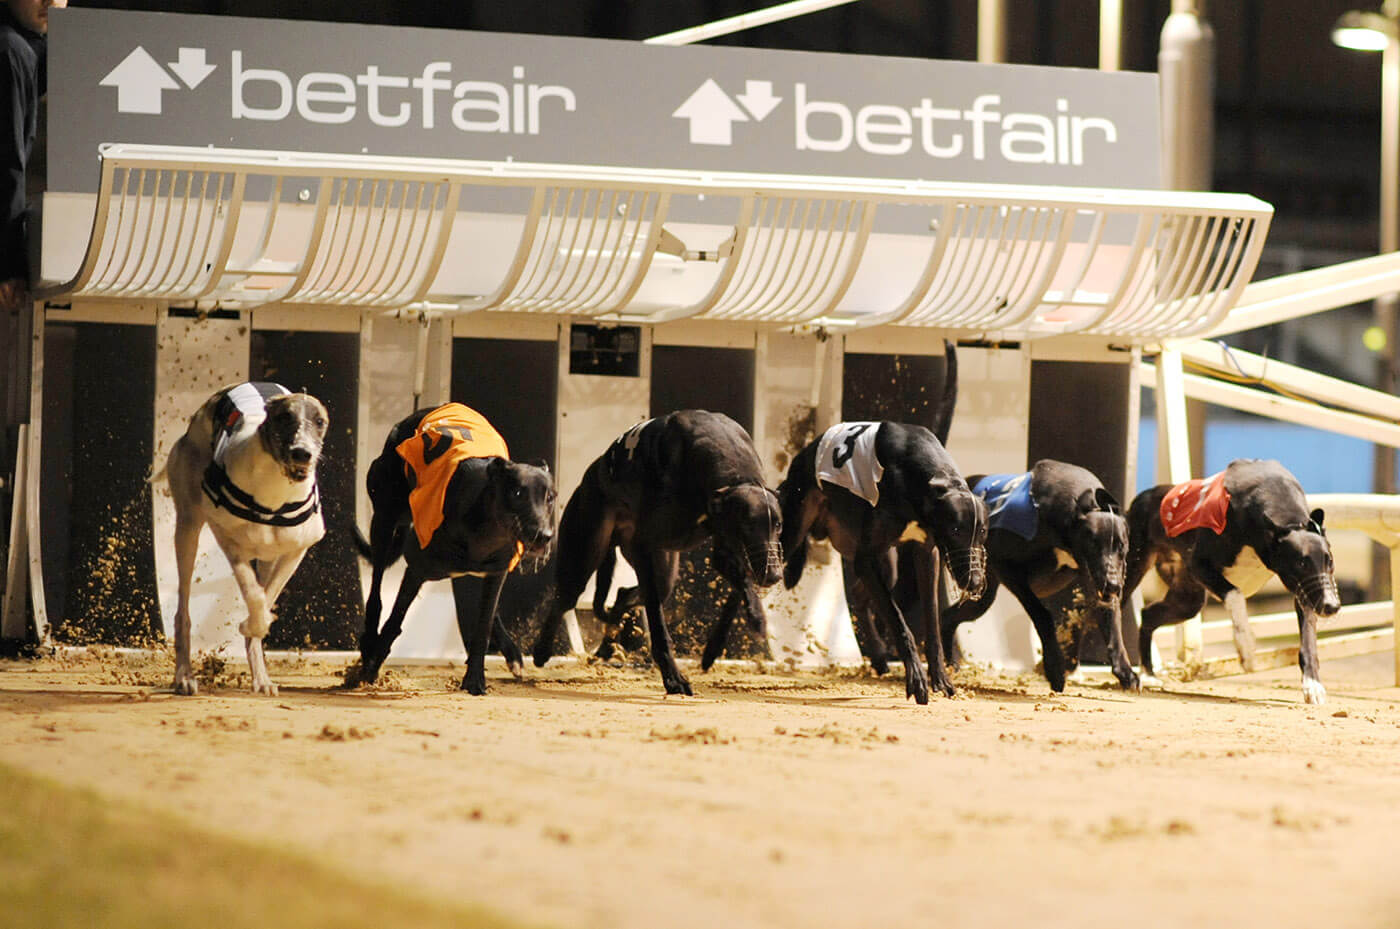 greyhound lay at betfair image